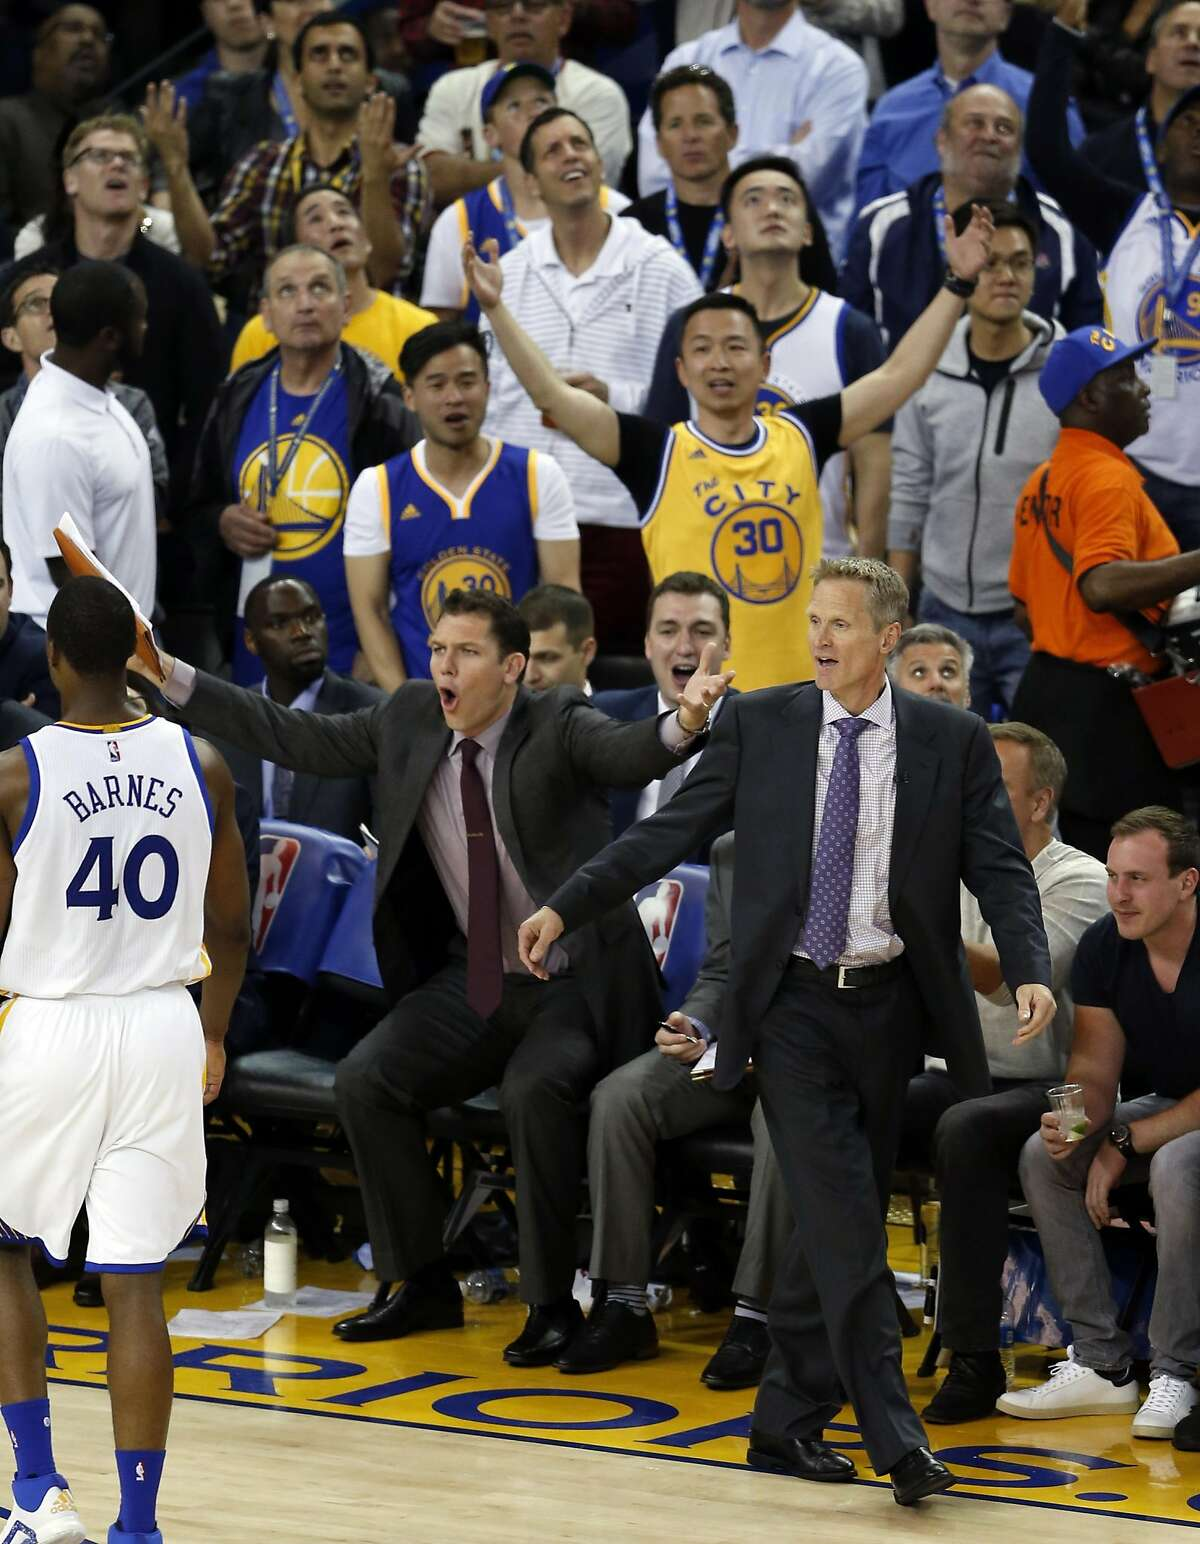 Golden State Warriors' head coach Steve Kerr and assistant coach Luke Walton react to a foul call in 3rd quarter while playing San Antonio Spurs during NBA game at Oracle Arena in Oakland, Calif., on Thursday, April 7, 2016.